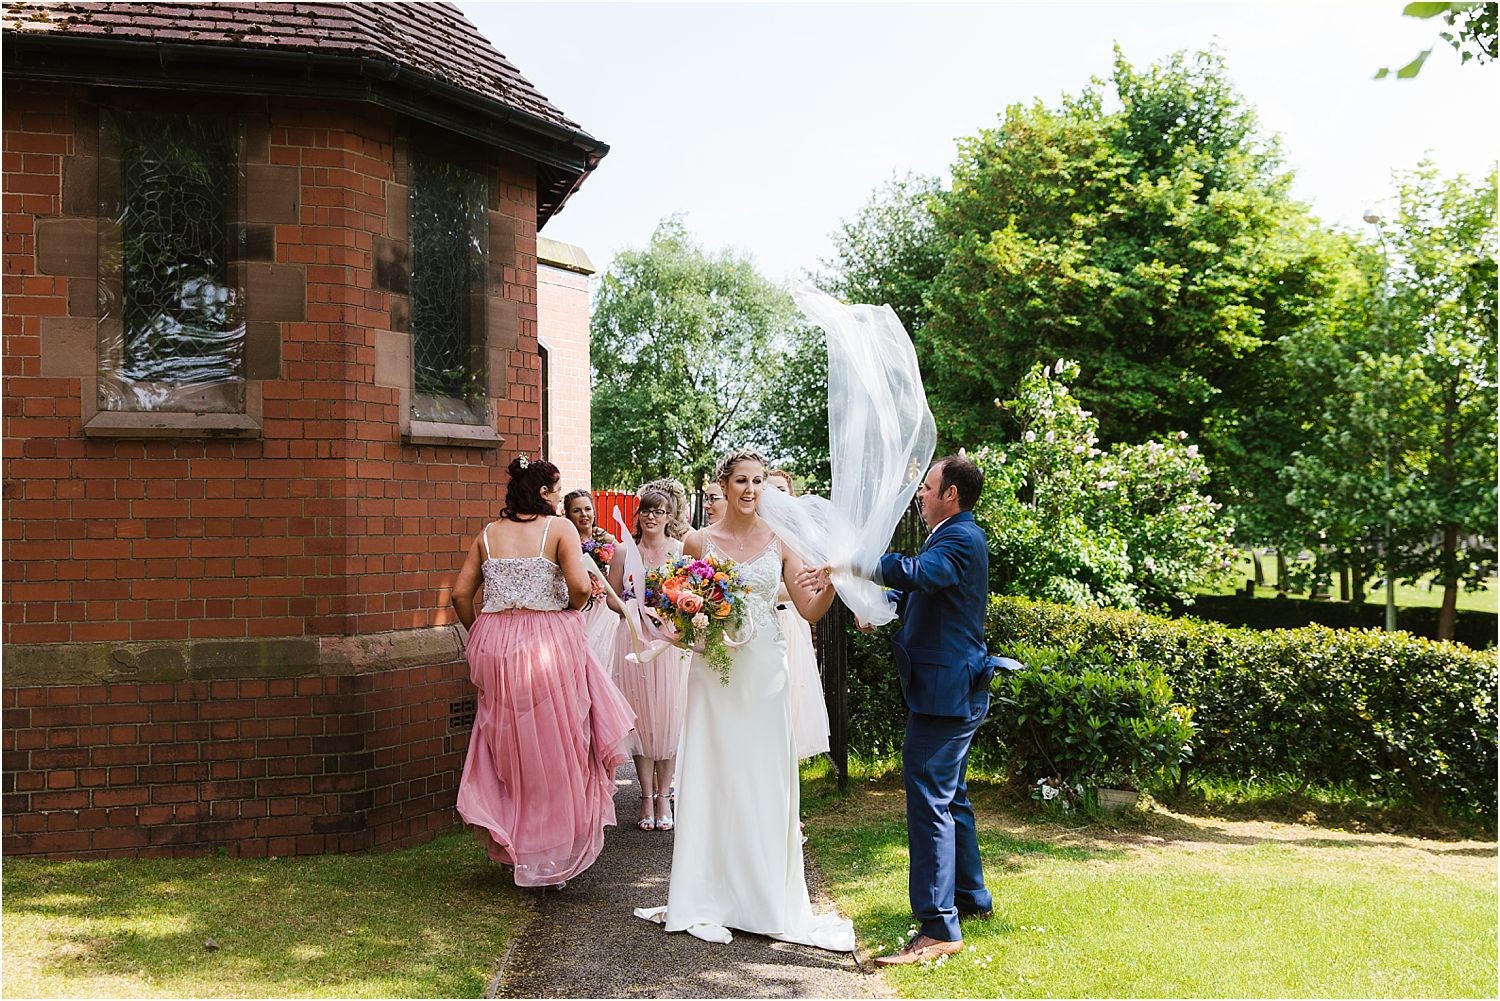 Bride's veil blowing in the wind at Lancashire wedding